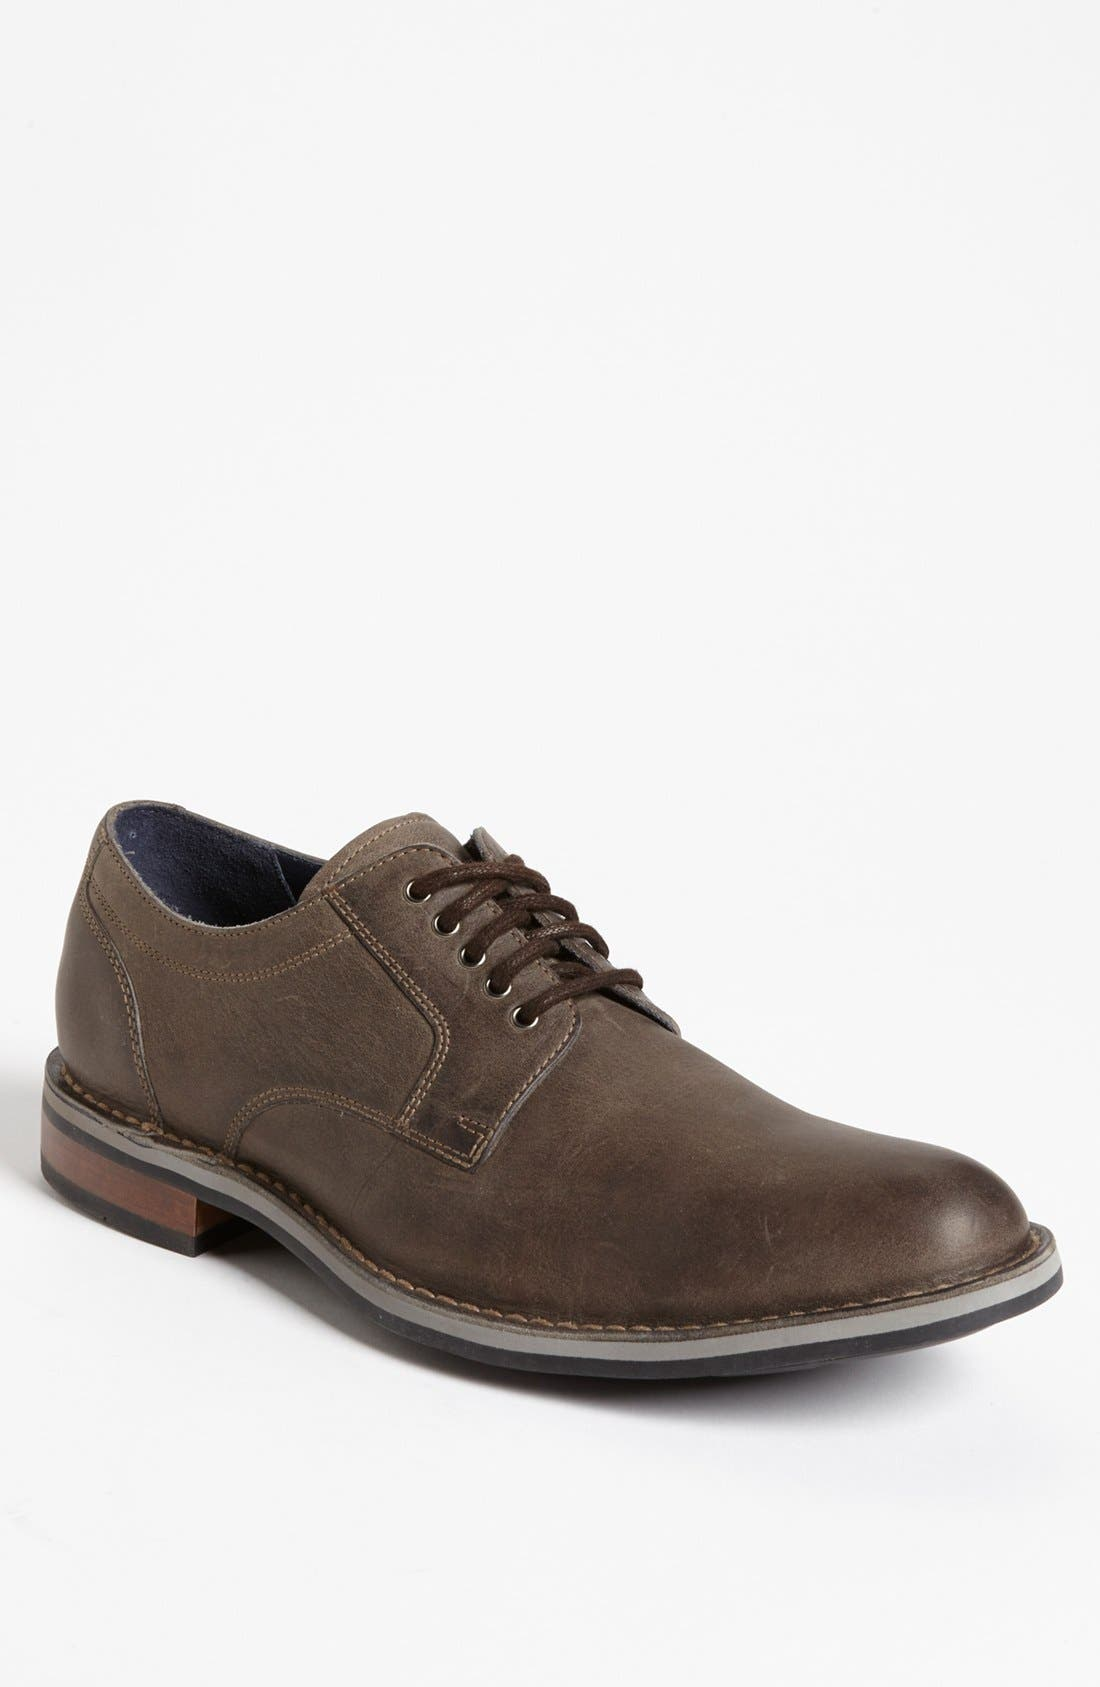 Main Image - Cole Haan 'Centre St.' Plain Toe Derby   (Men)